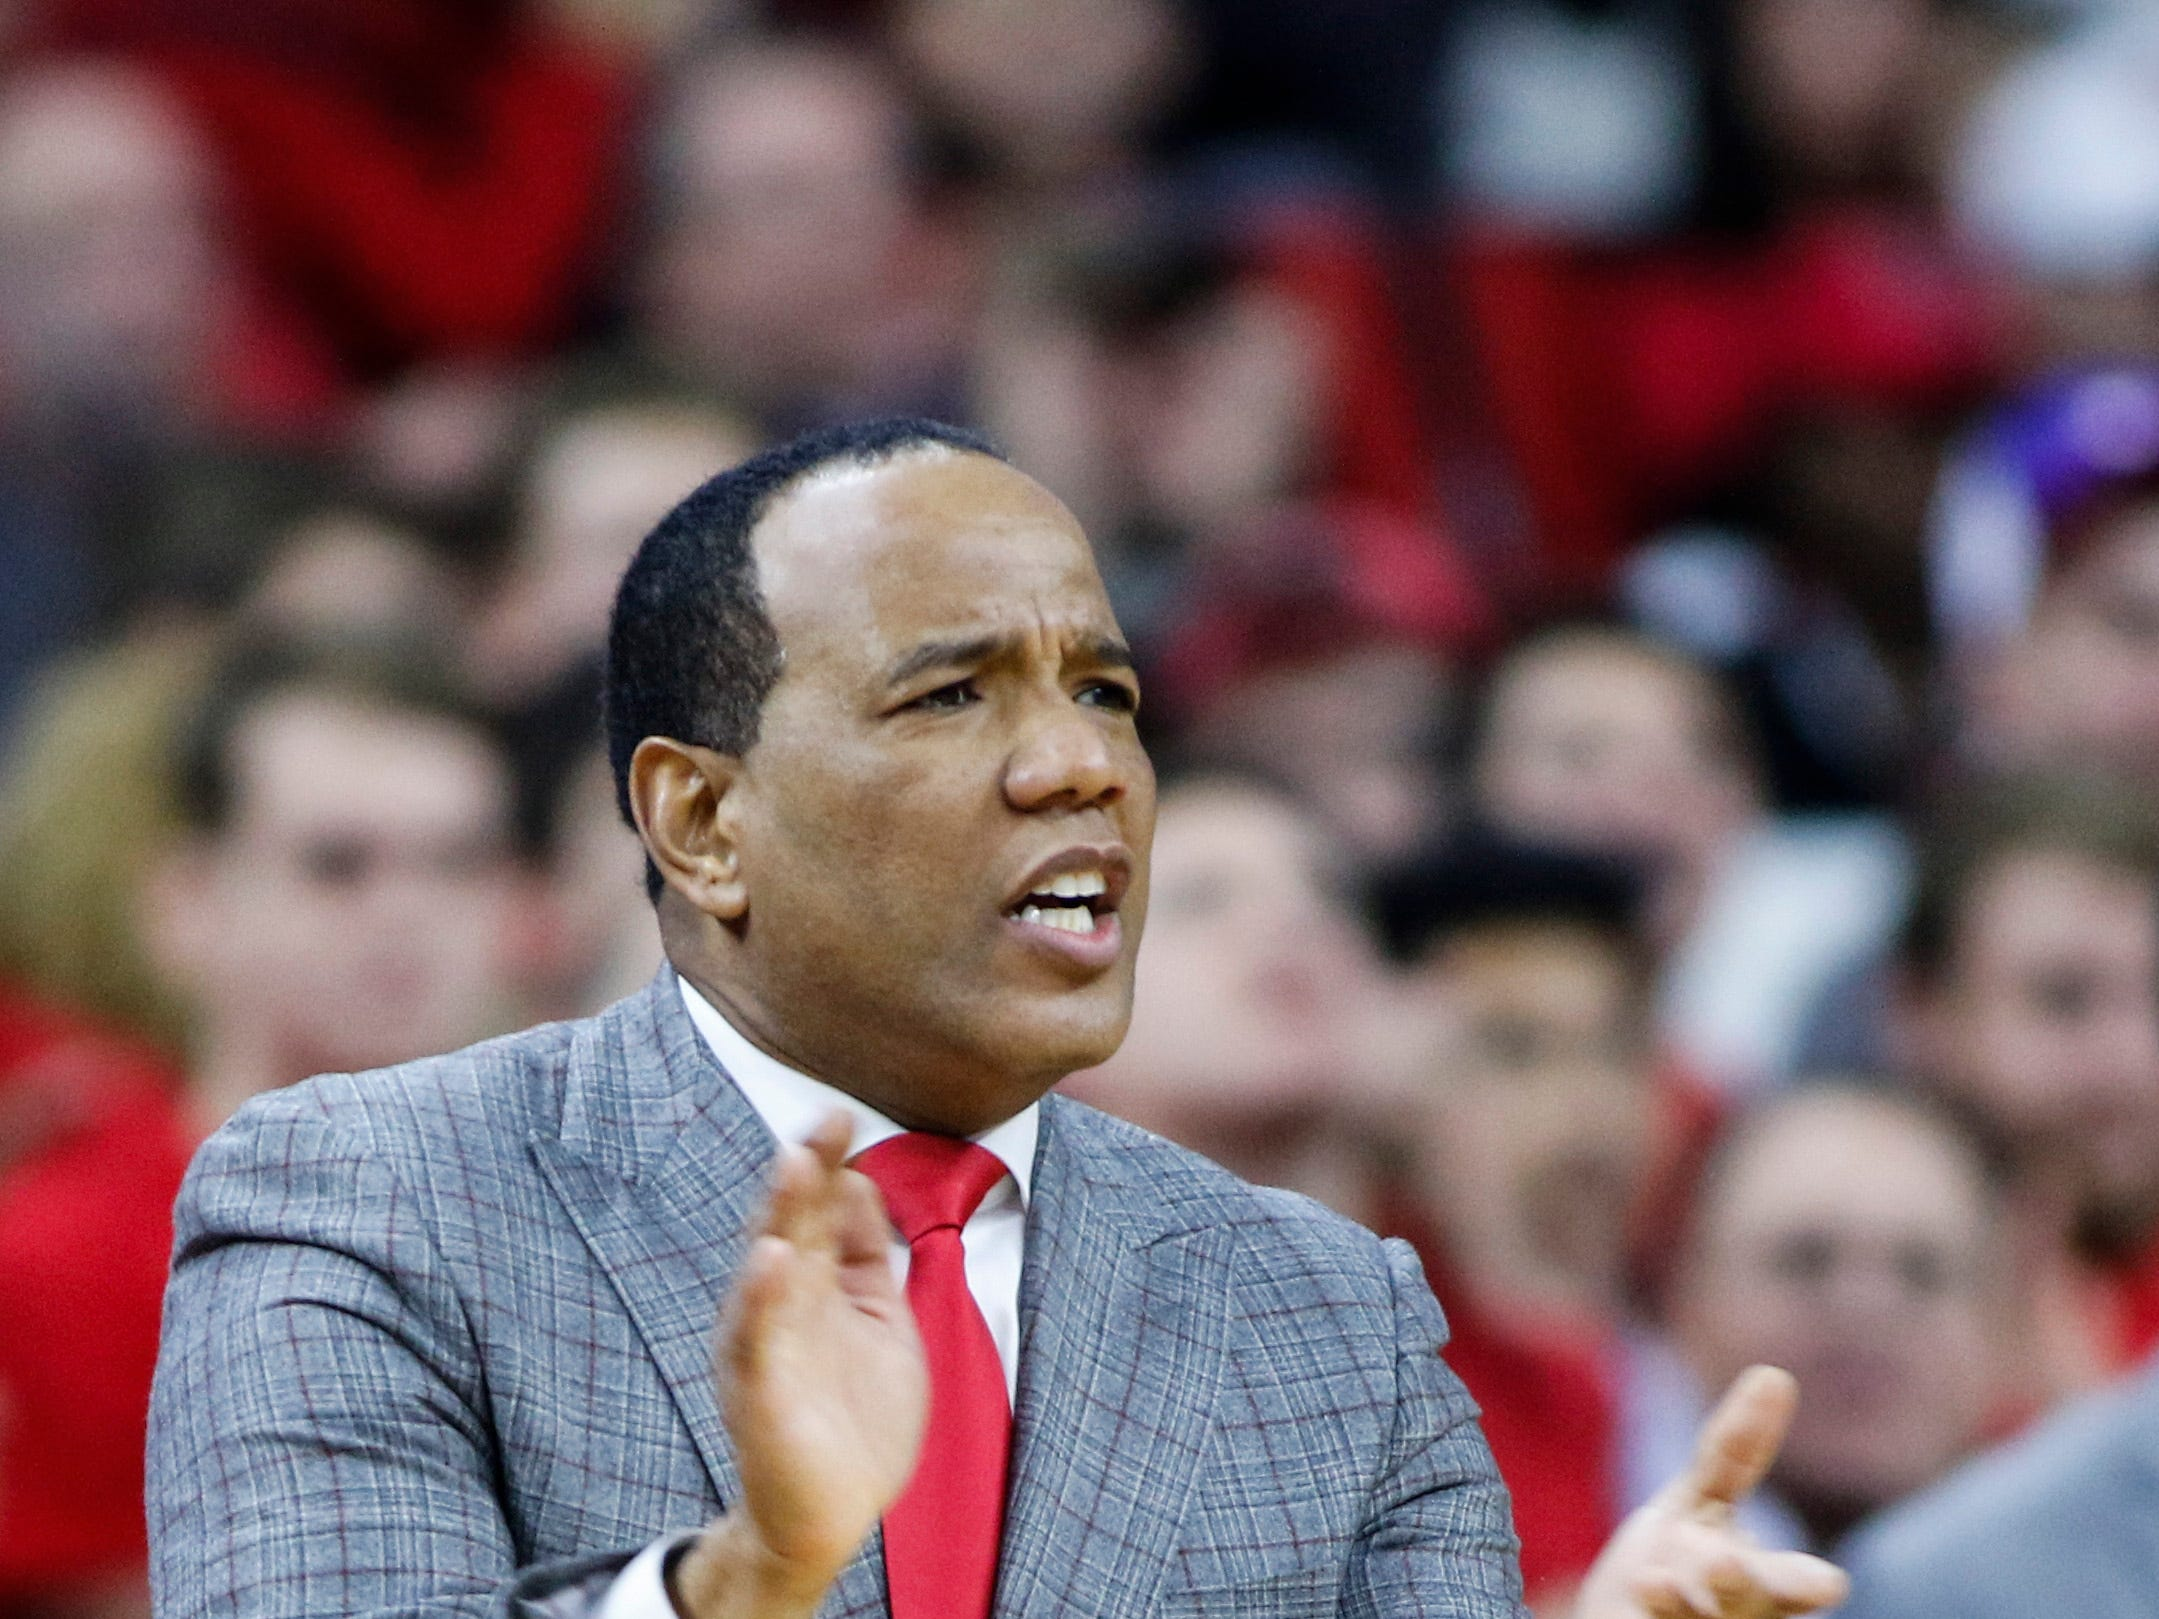 Dec 19, 2018; Raleigh, NC, USA; North Carolina State Wolfpack head coach Kevin Keatts encourages his team as they play against the Auburn Tigers in the second half at PNC Arena. The North Carolina State Wolfpack won 78-71. Mandatory Credit: Nell Redmond-USA TODAY Sports